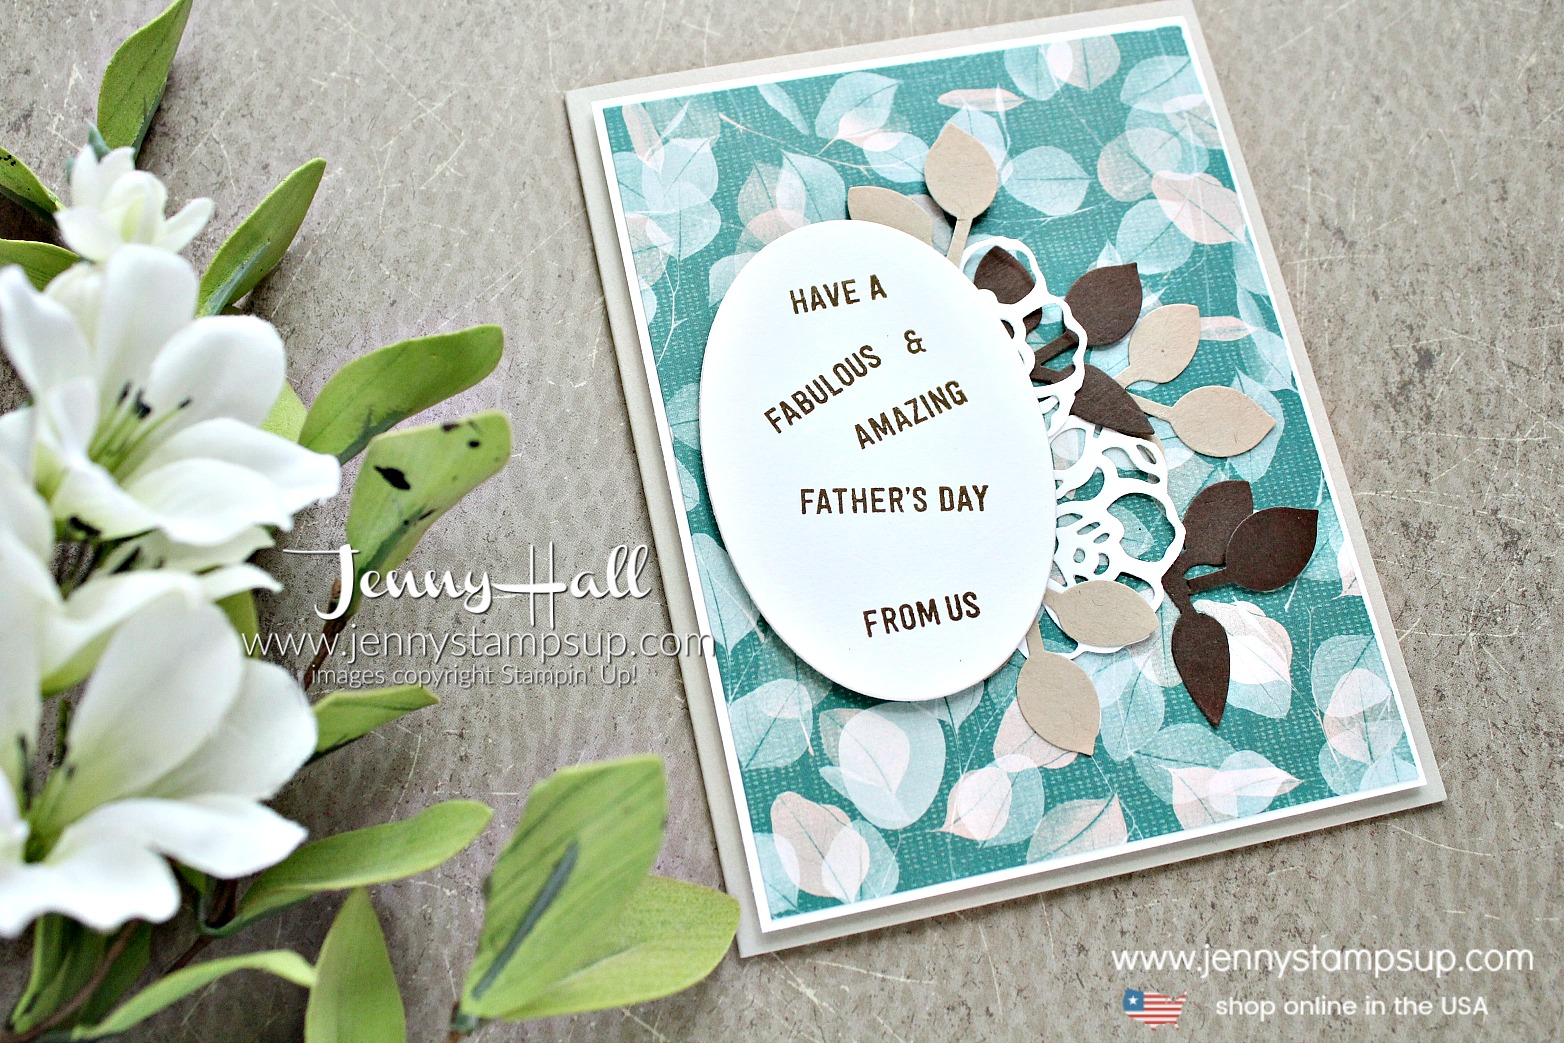 Father's Day card from us created by Jenny Hall at www.jennystampsup.com for #fathersdaycard #masculinecard #cardfromus #jennyhall #jennyhalldesign #jennystampsup #naturespoemdsp #stamping #suochallenge